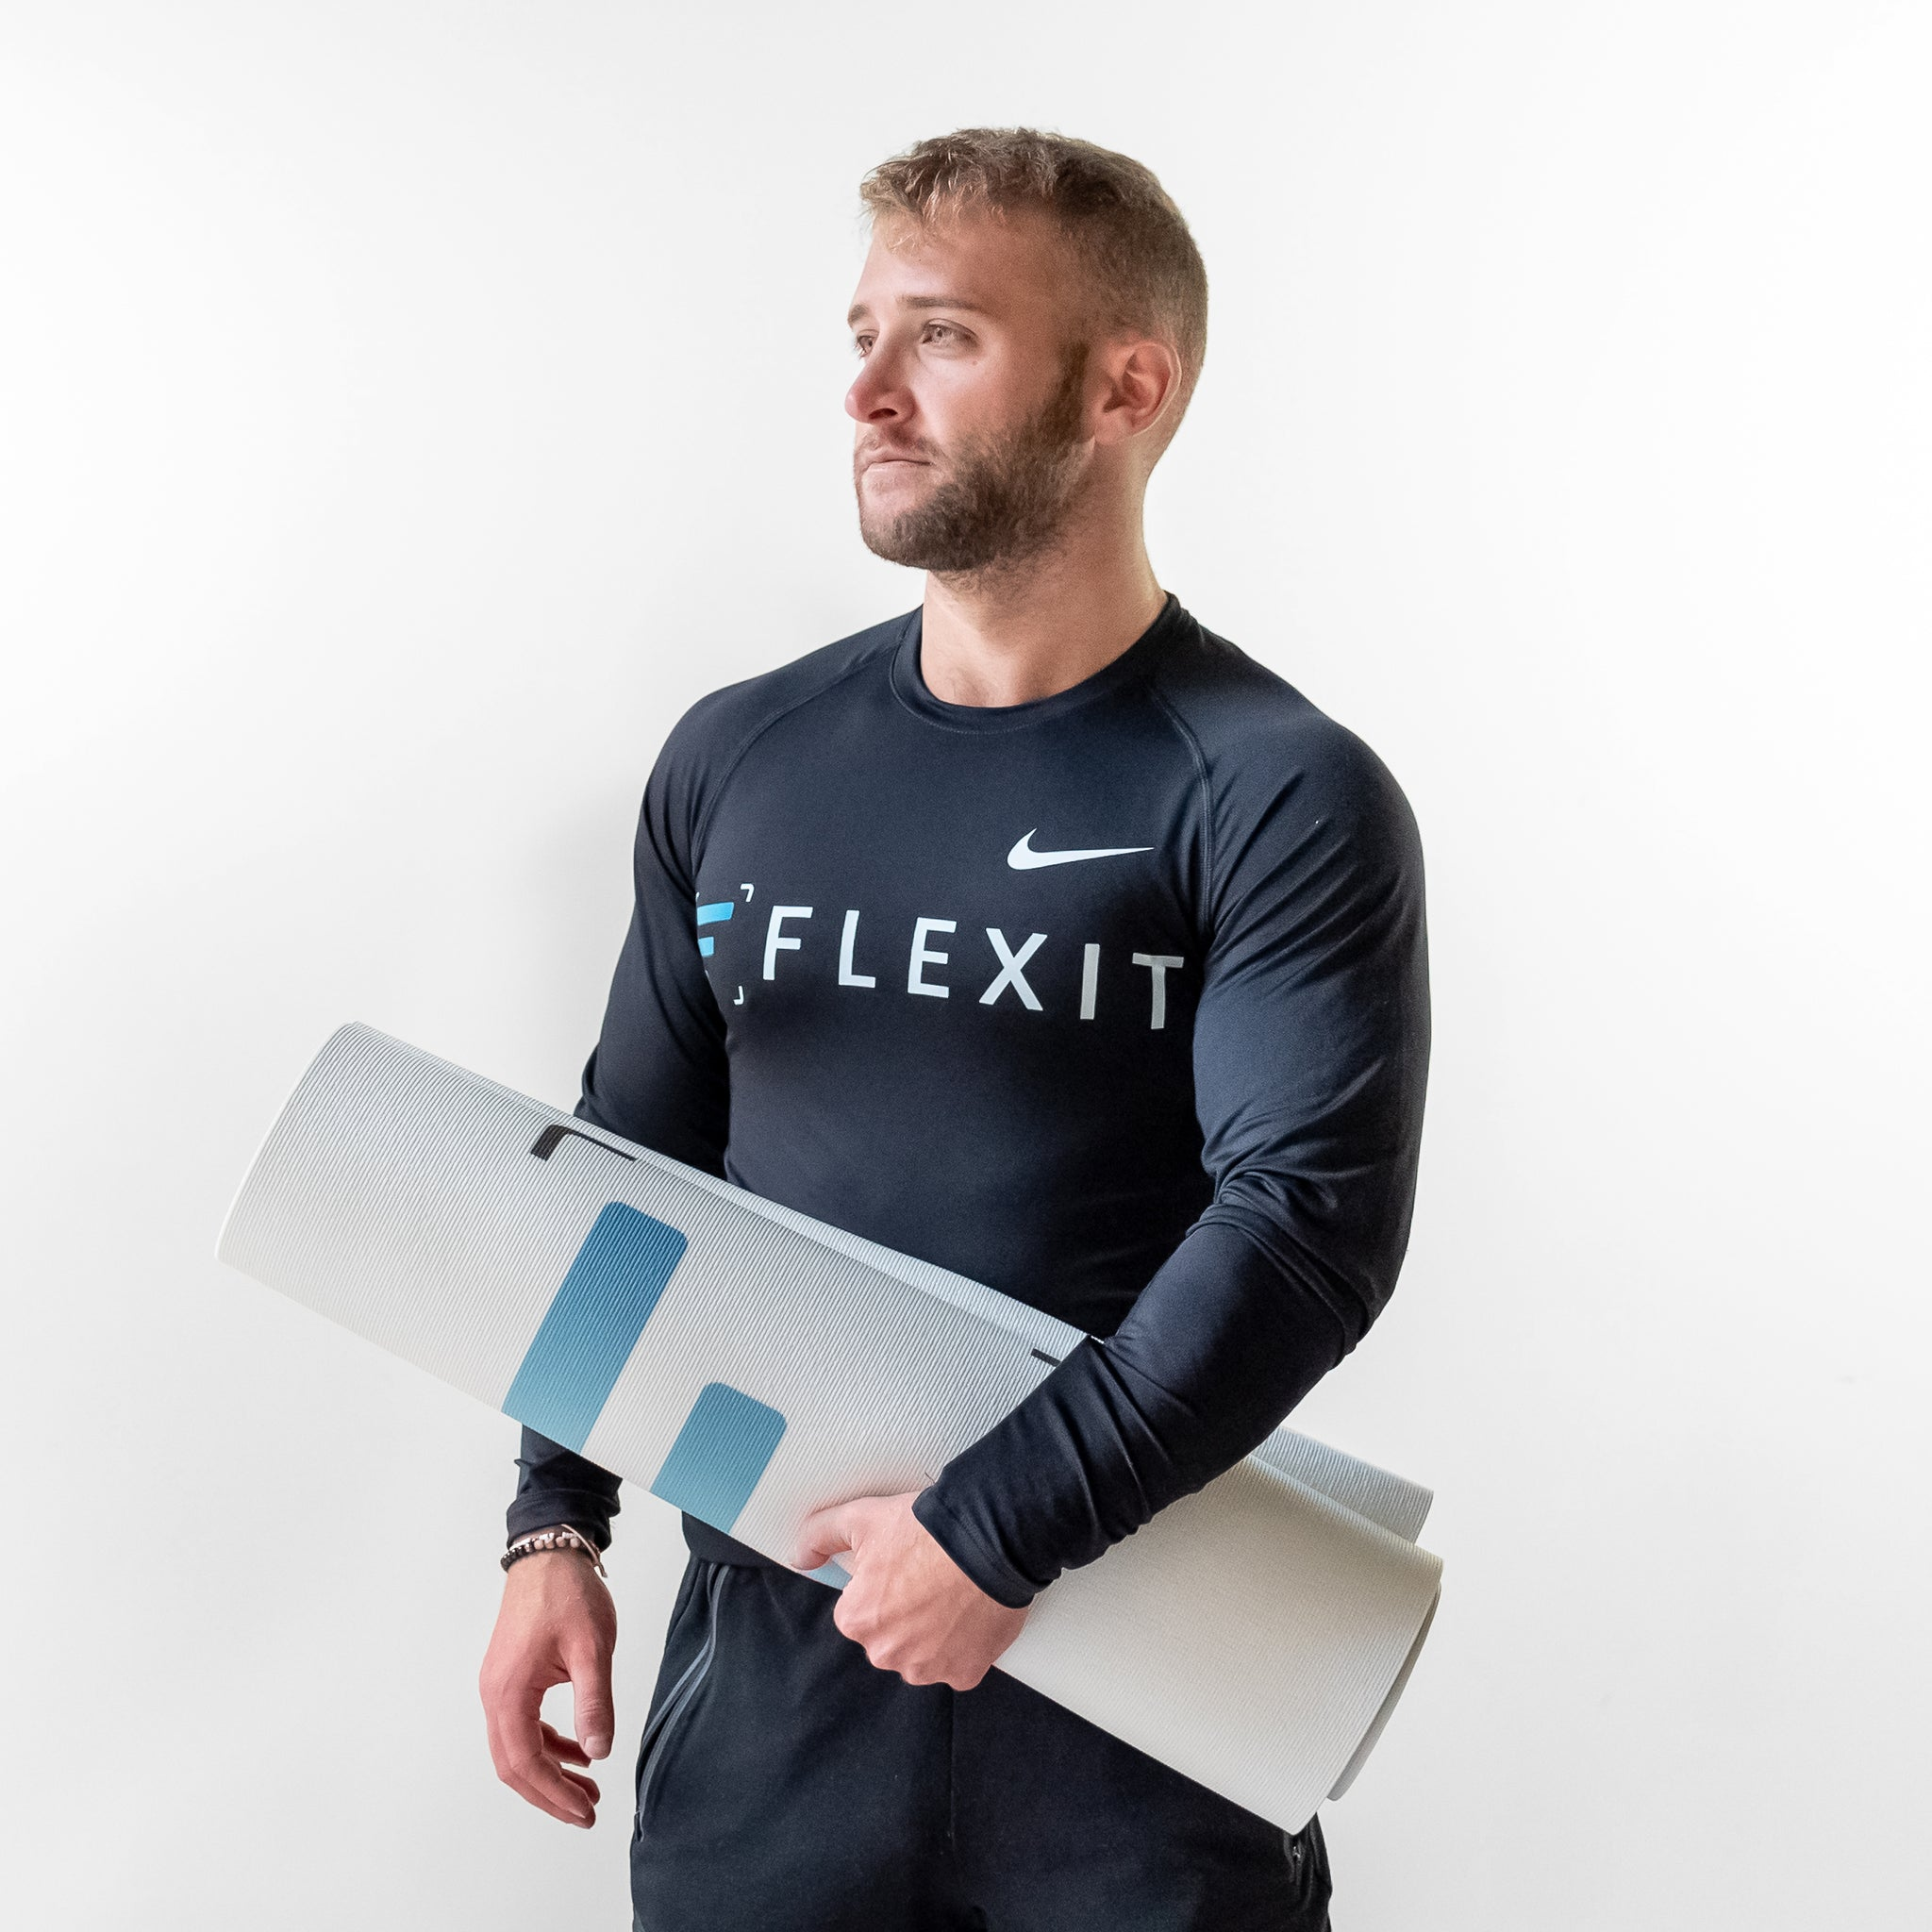 Man holding FlexIt yoga mat in hand.